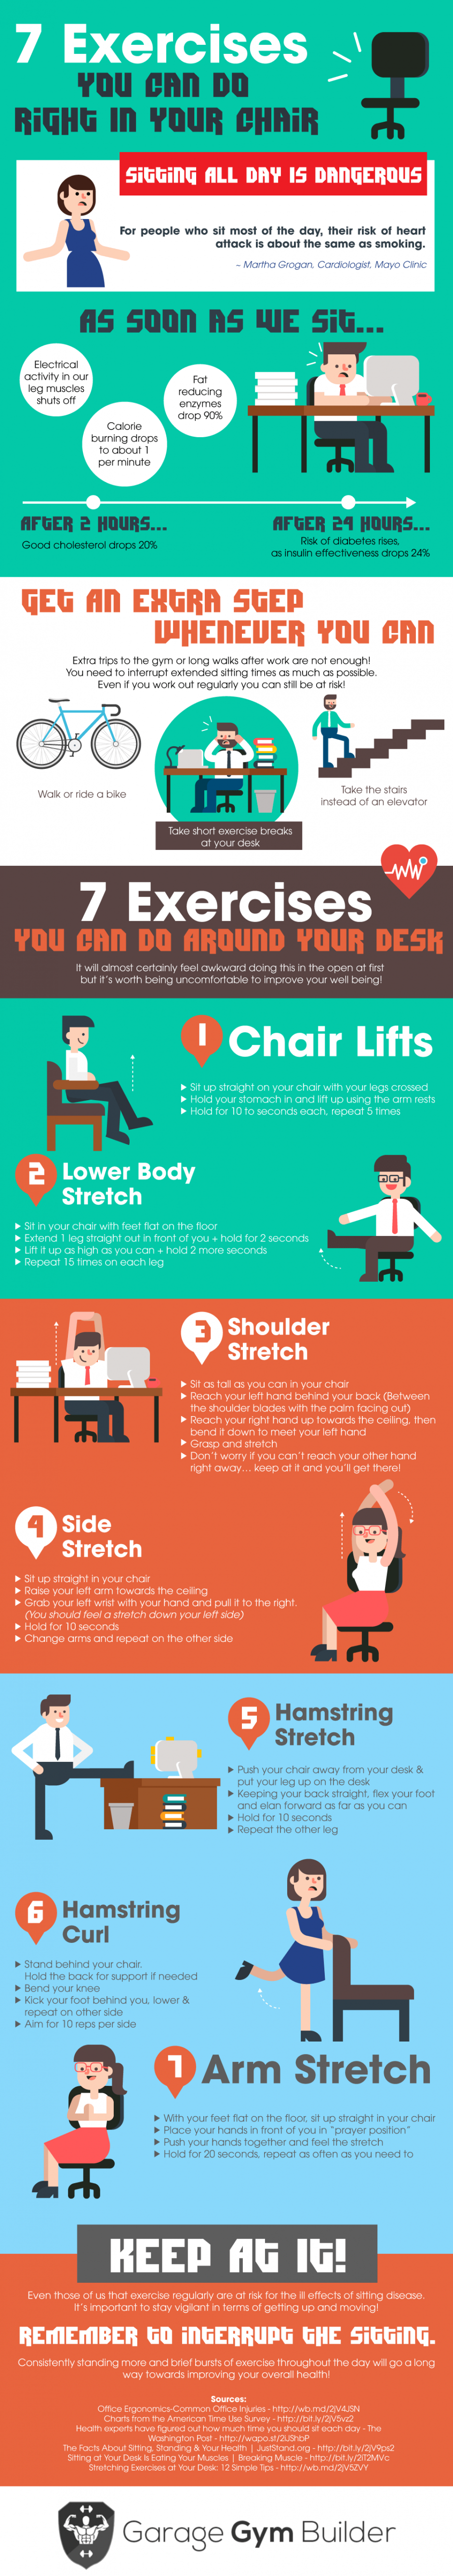 7 Exercises That Will Get You Out Of Your Chair